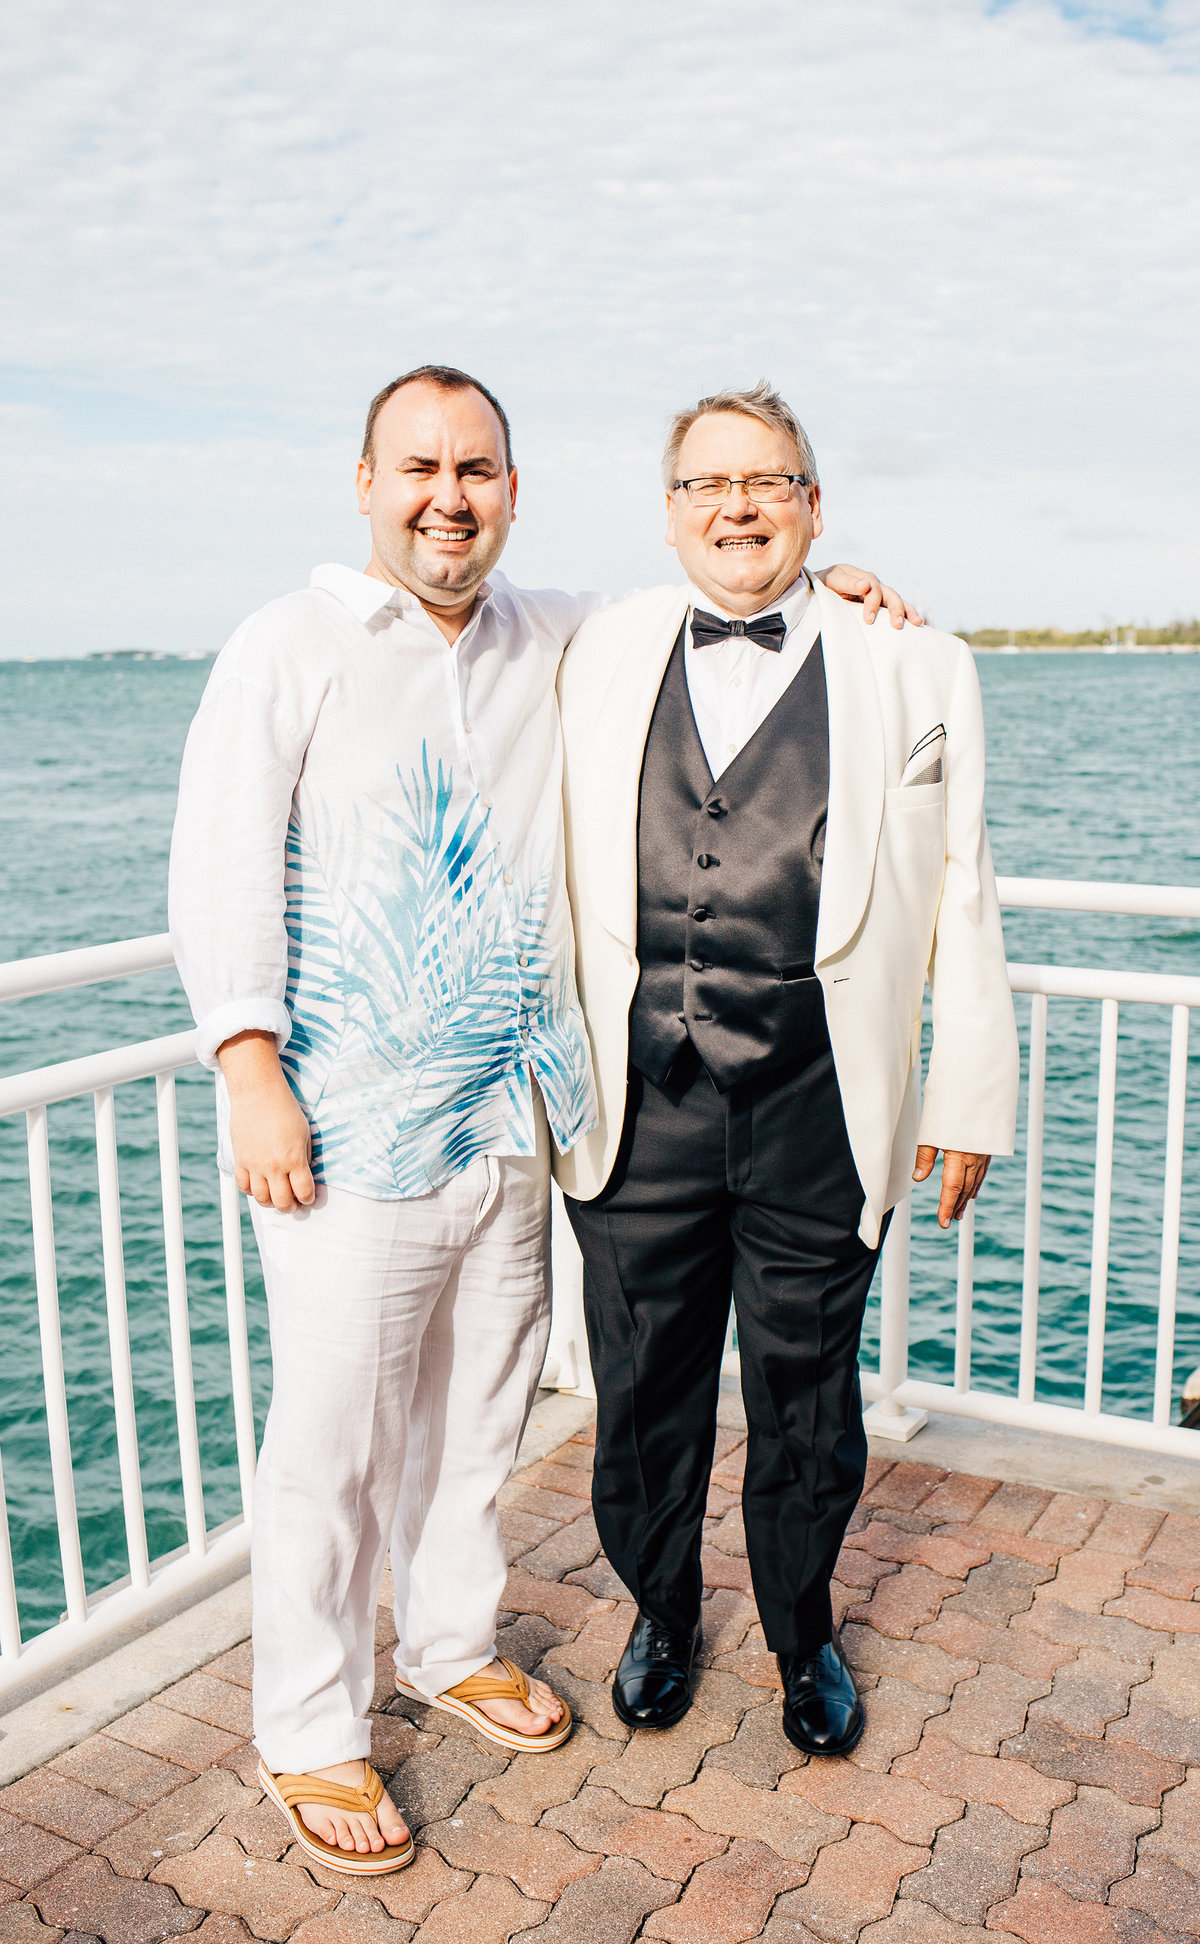 Kimberly_Hoyle_Photography_Bachman_Pier_House_Key_West_Wedding-5